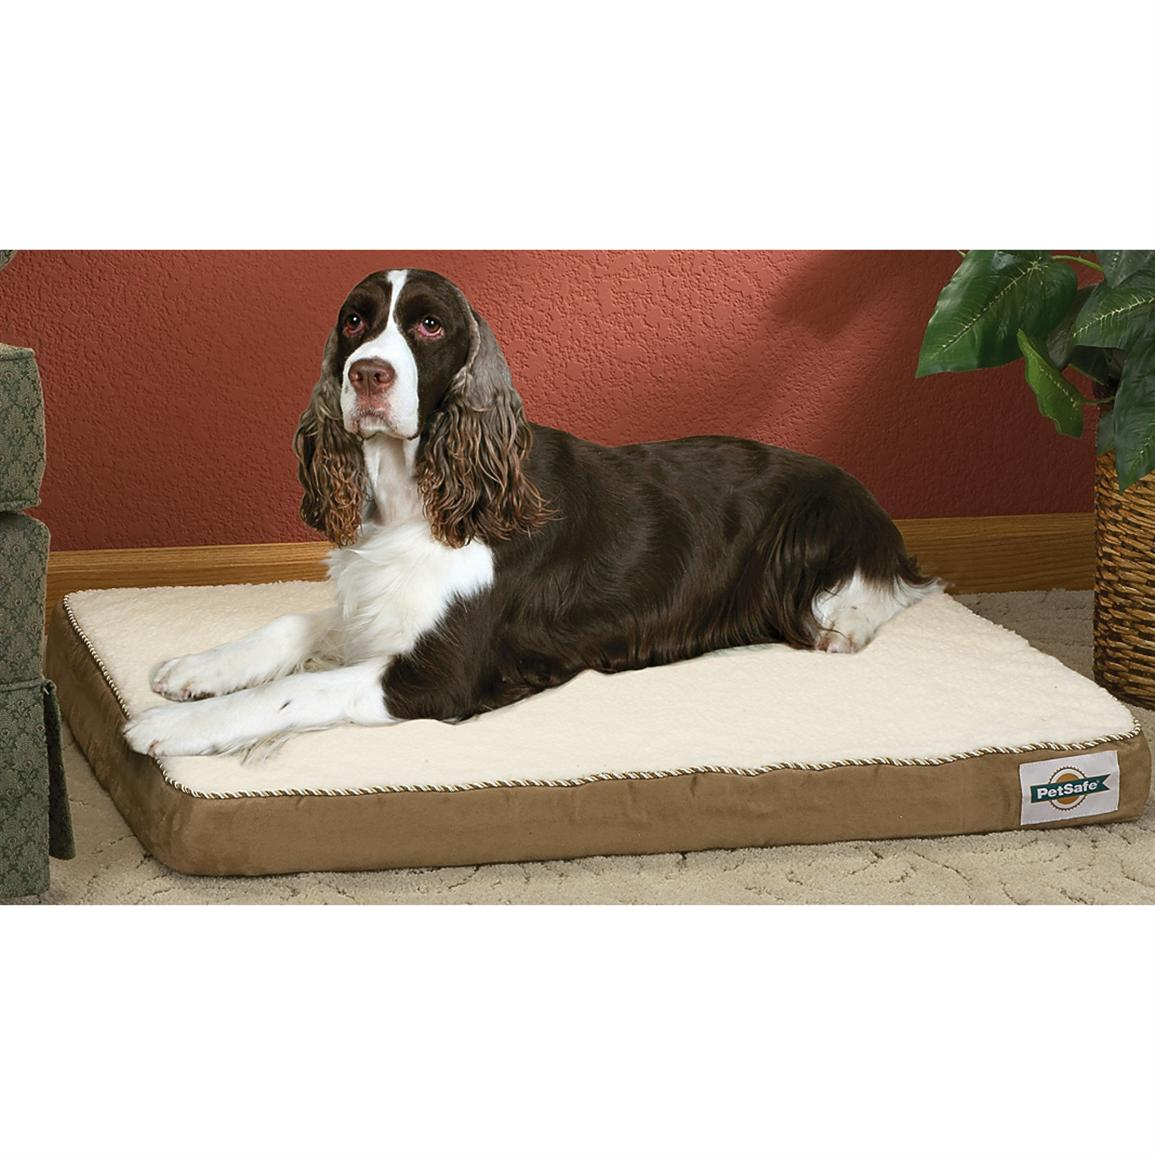 Petsafe 174 Heated Pet Bed 153598 Kennels Amp Beds At